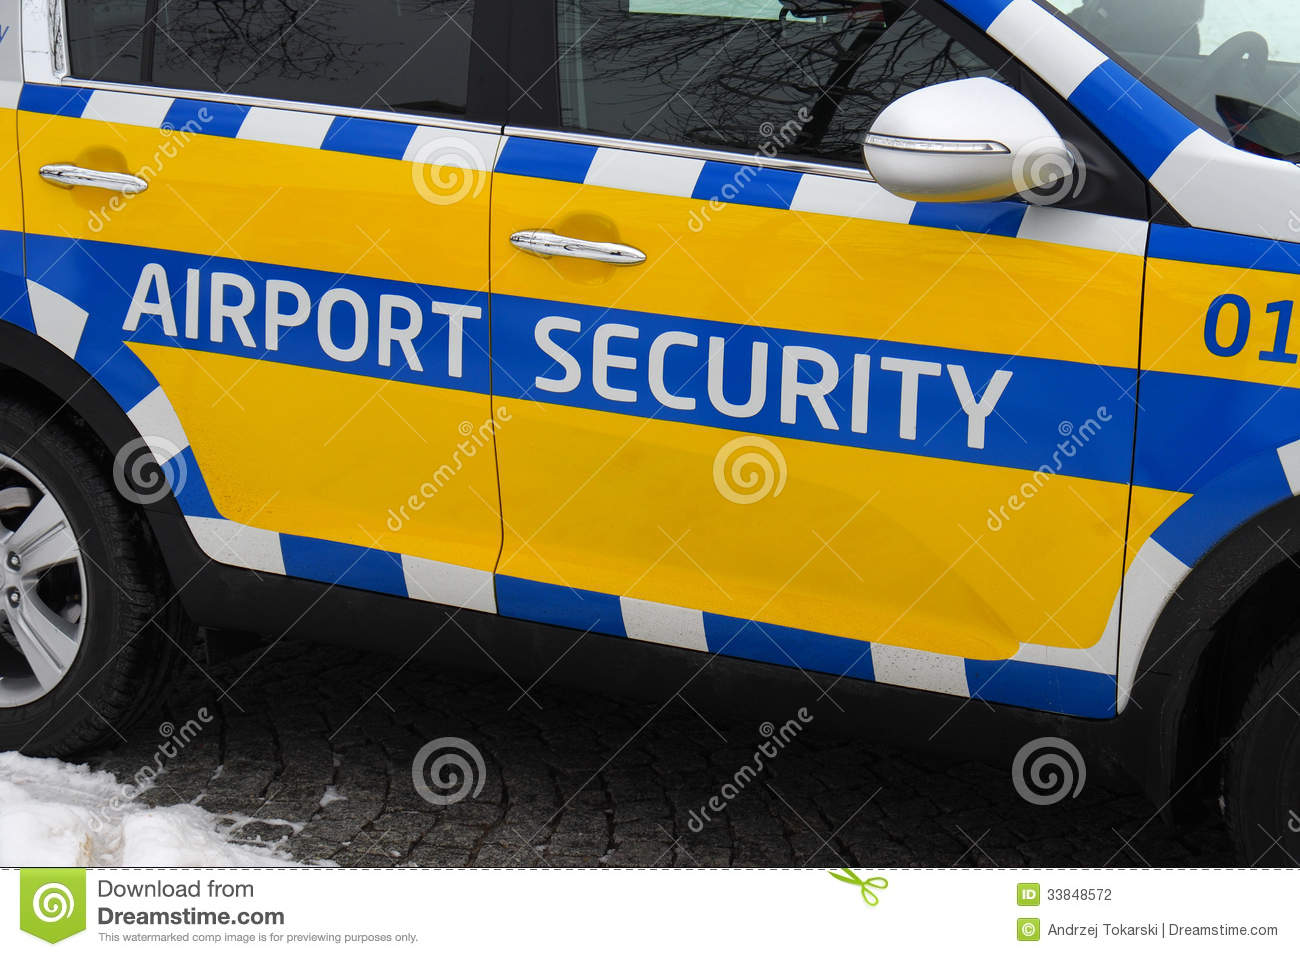 airport security how the use of Airport security is one of the biggest concerns for travelers these days find out how high-tech solutions are used to make flying as safe as possible.